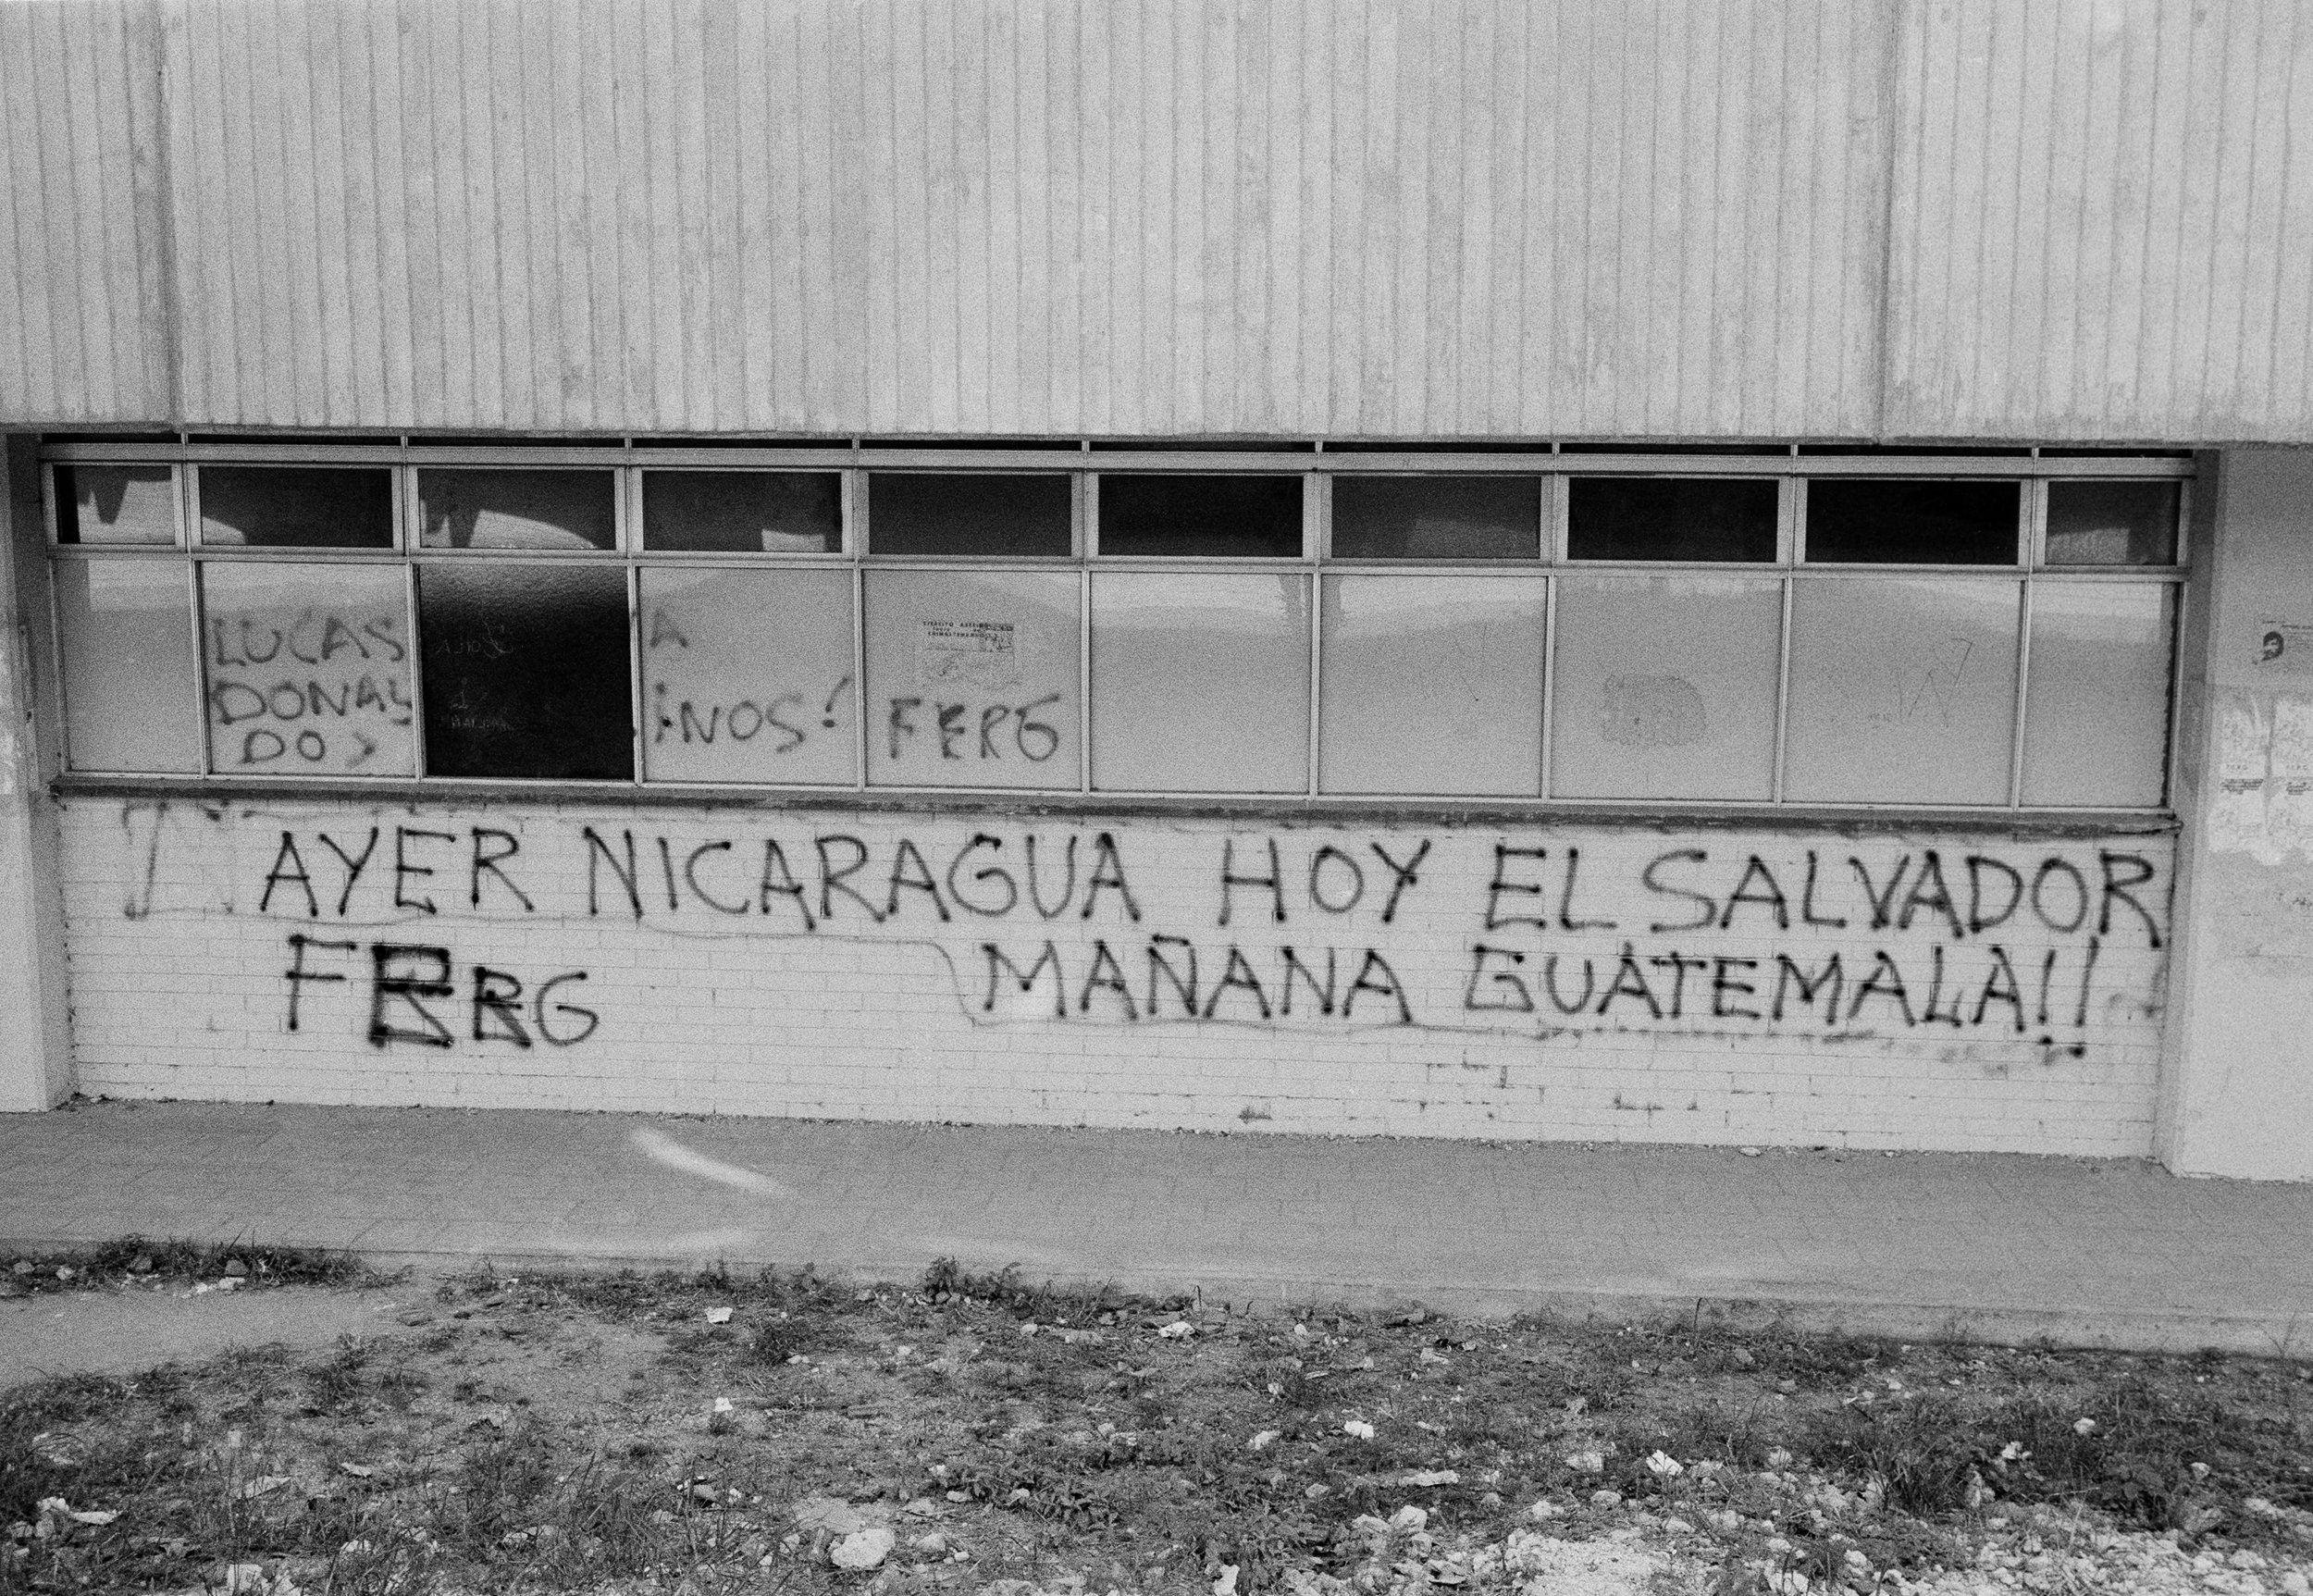 Graffiti in support of leftist insurgent groups collects on a wall in the University of San Carlos campus in Guatemala City, Guatemala, March 1, 1982.